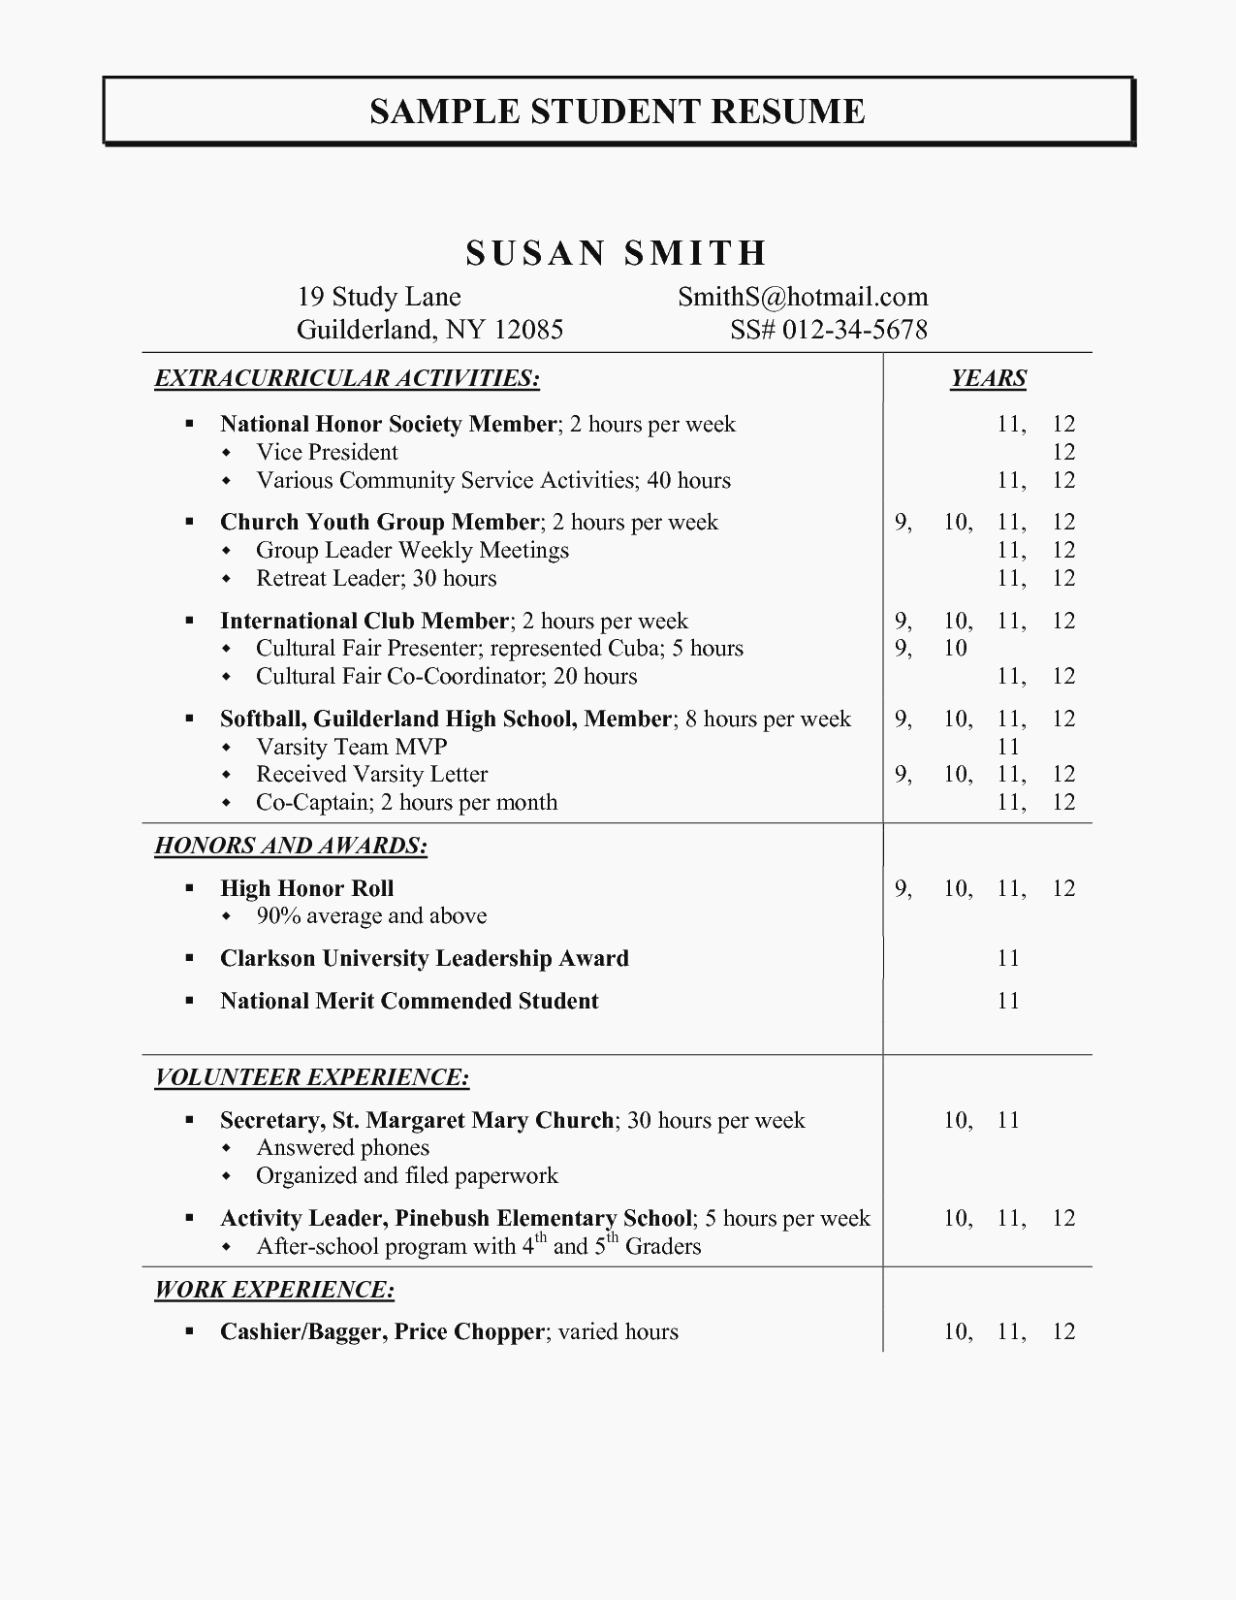 Activities Resume Template Inspirational Activities for Resume Valid Extracurricular Sample